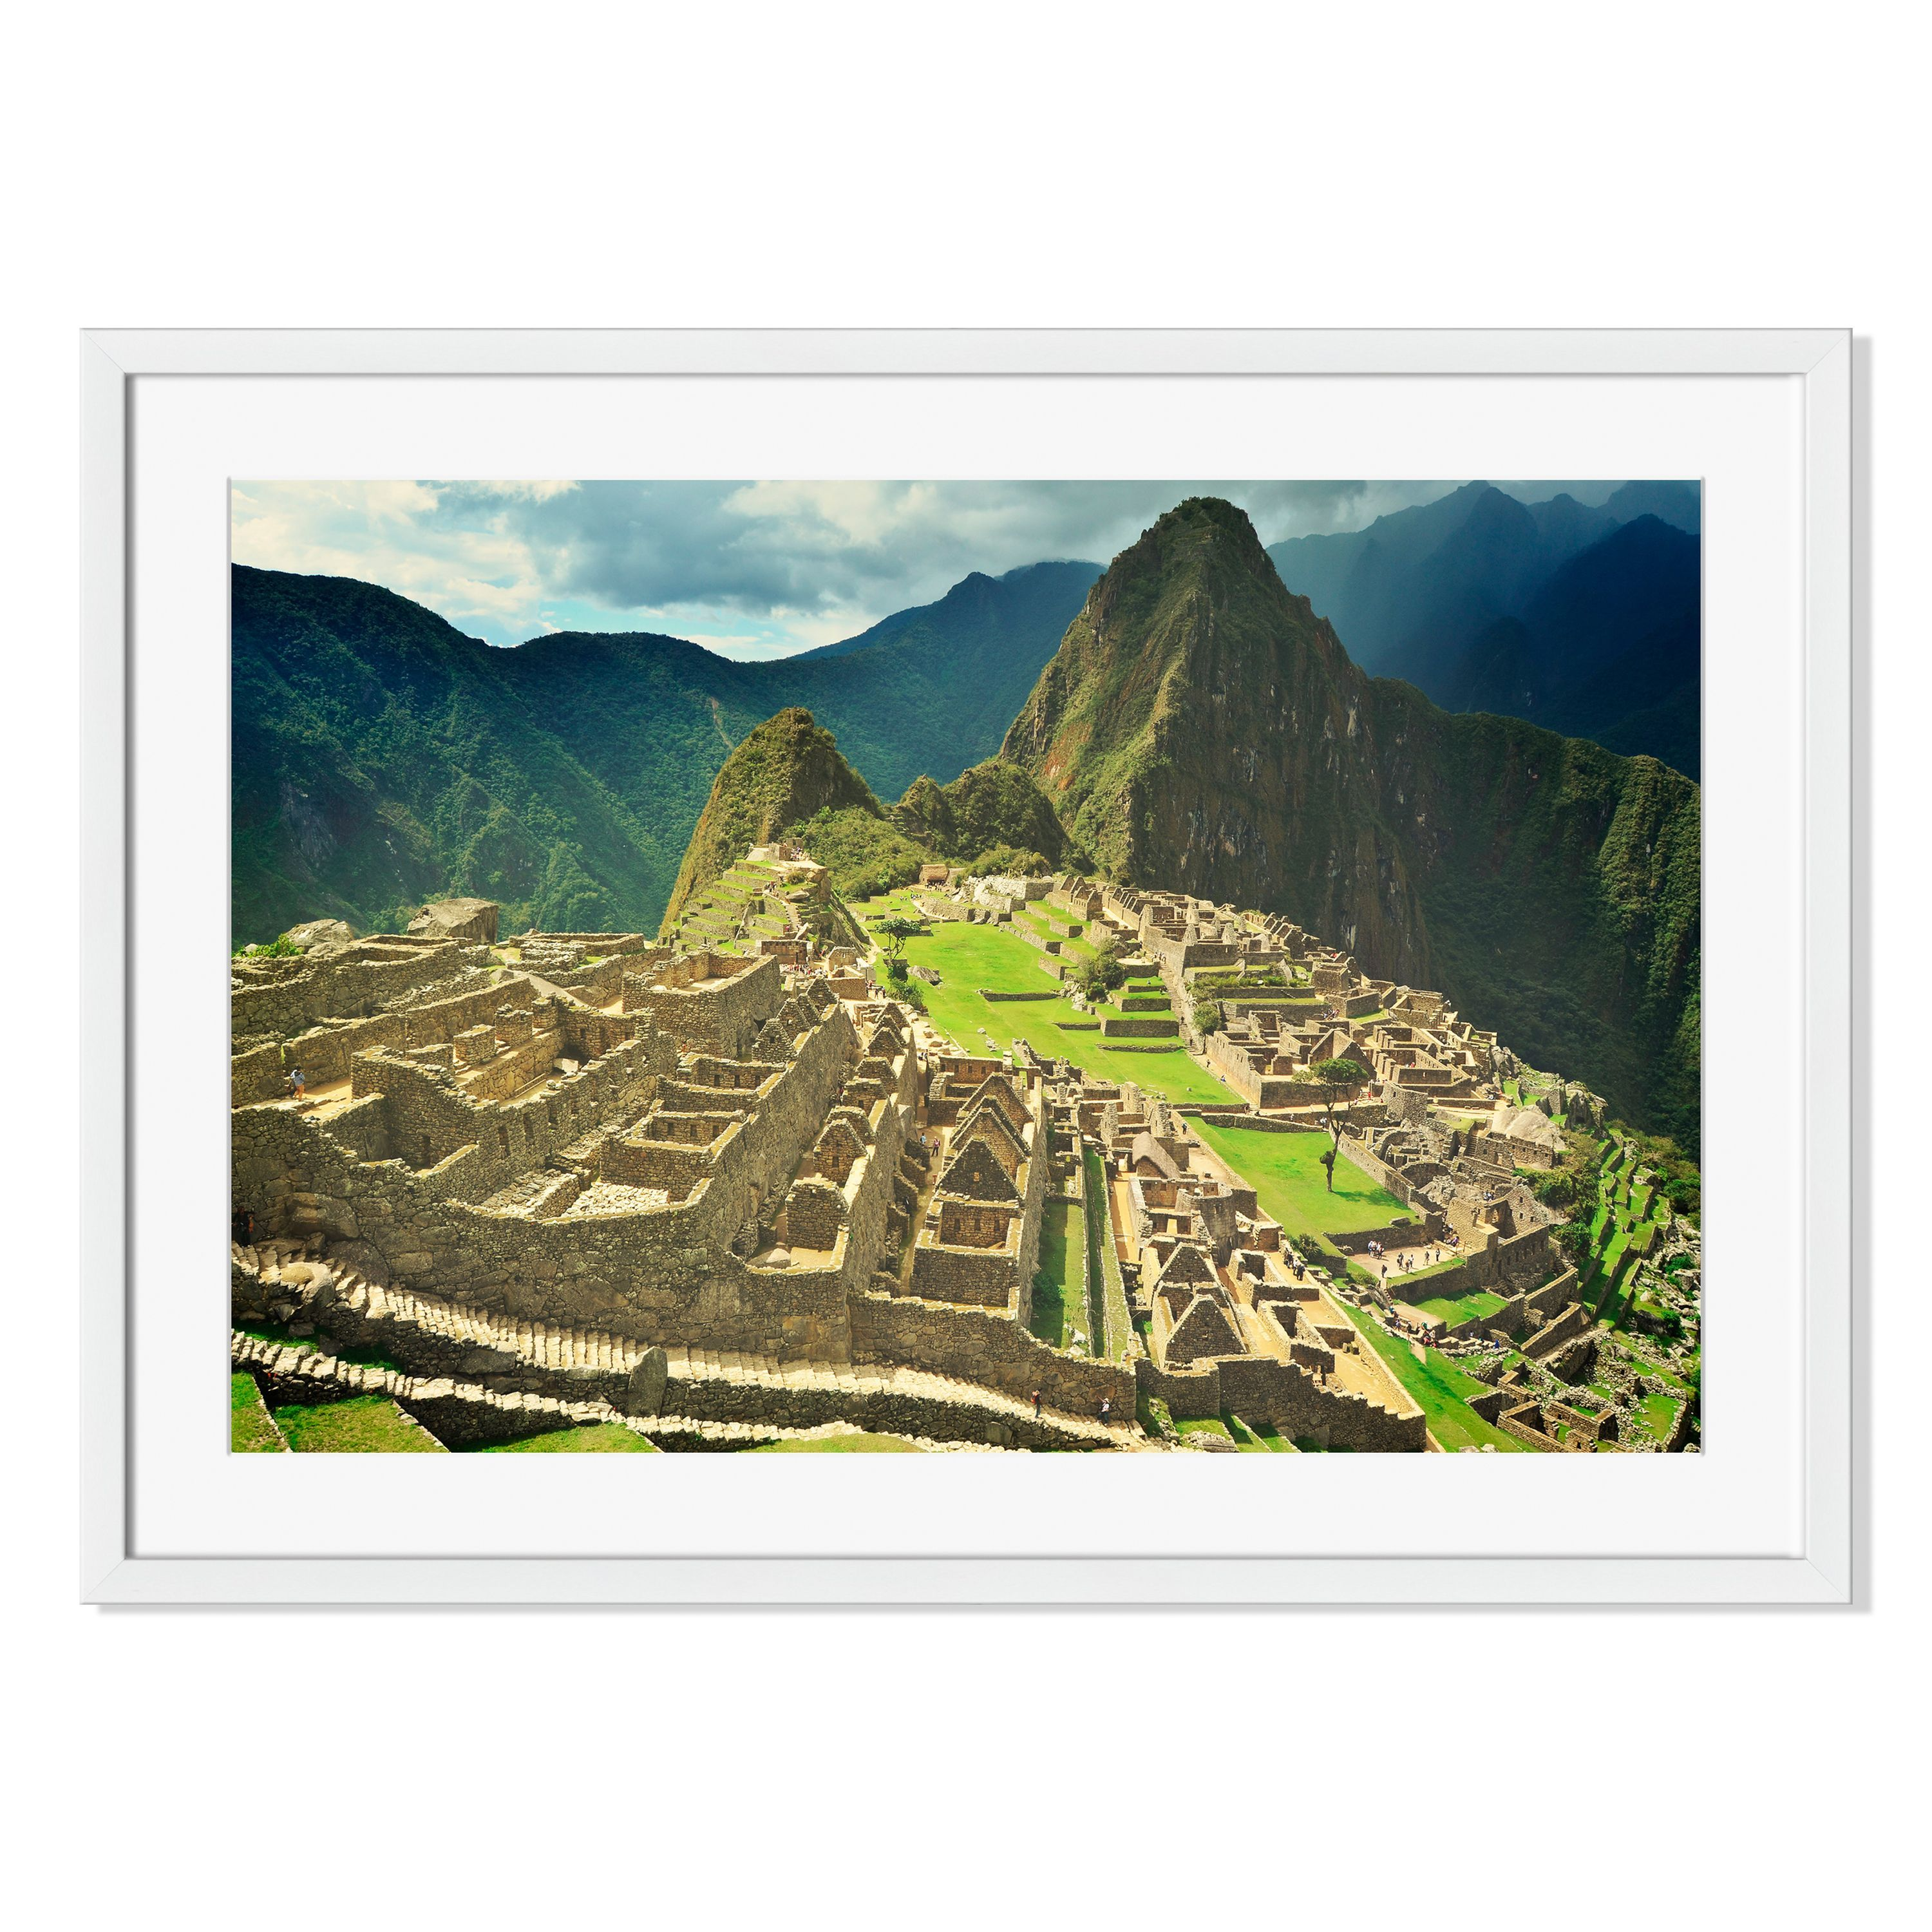 Gallery Direct Machu Picchu Lost City of the Incas Print on Paper Framed Print